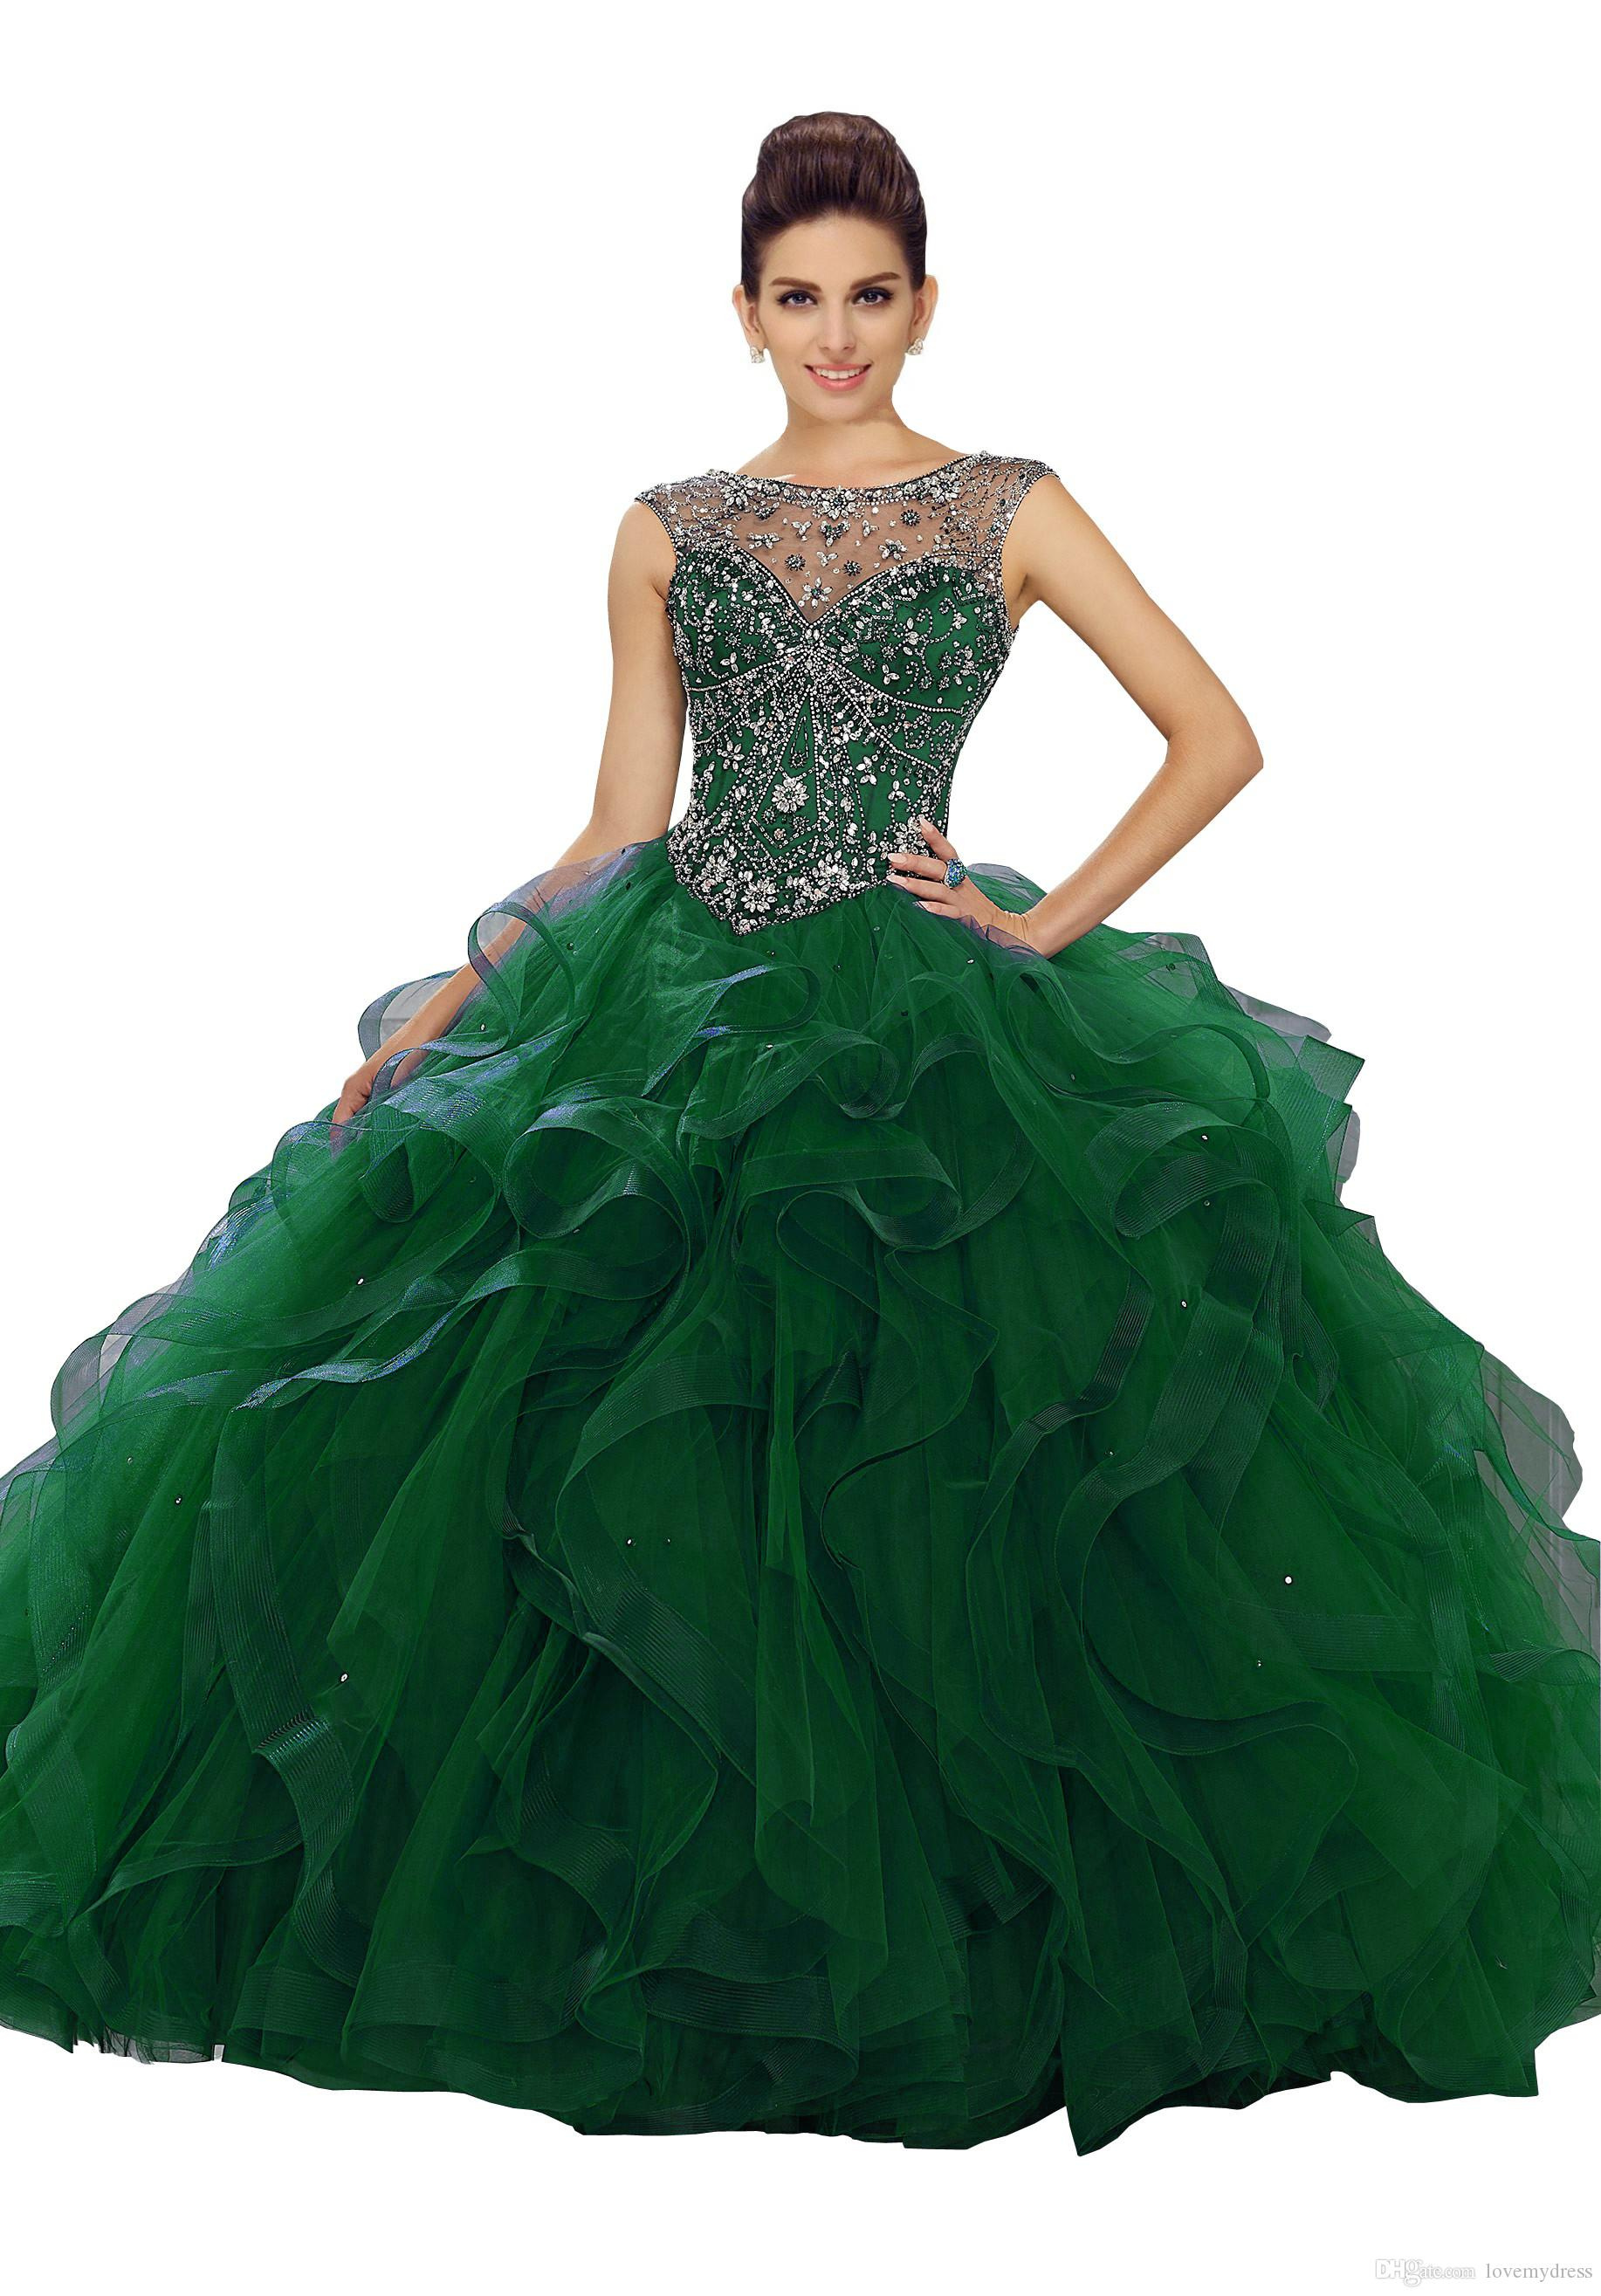 b903f5e8f2f Exquisite Green Quinceanera Prom Dress Ball Gowns Ruffles Tulle Cap Short  Sleeves Bateau Sheer Neck Crystal Beaded Hollow Back Evening Gowns Dresses  For ...